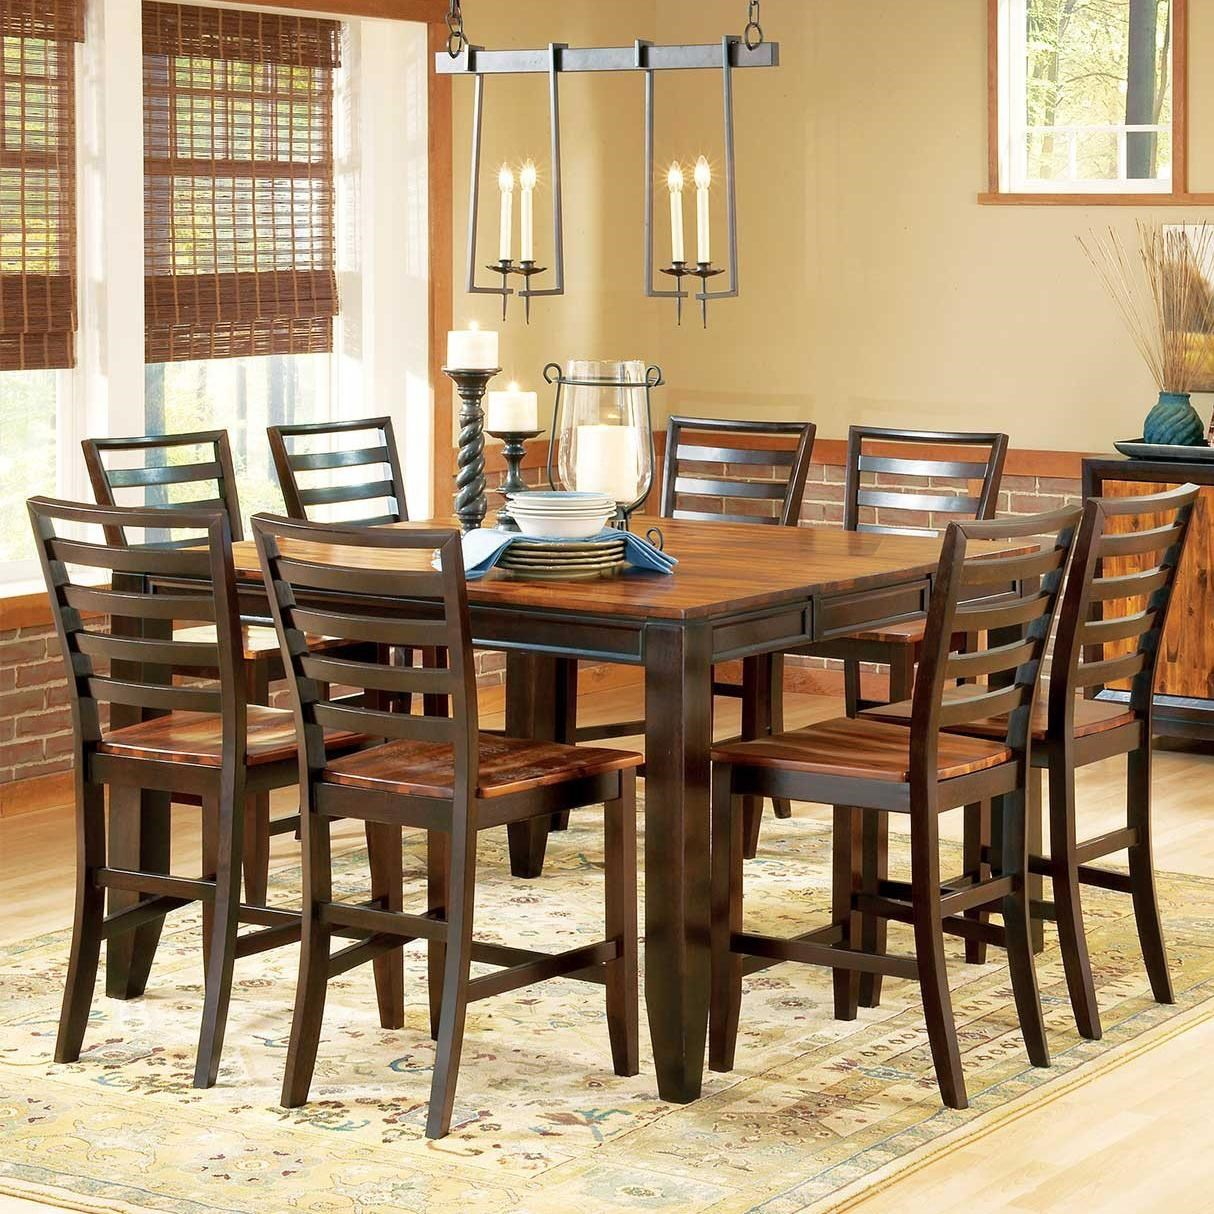 Charmant Star Abaco 9 Piece Gathering Table Set, 54